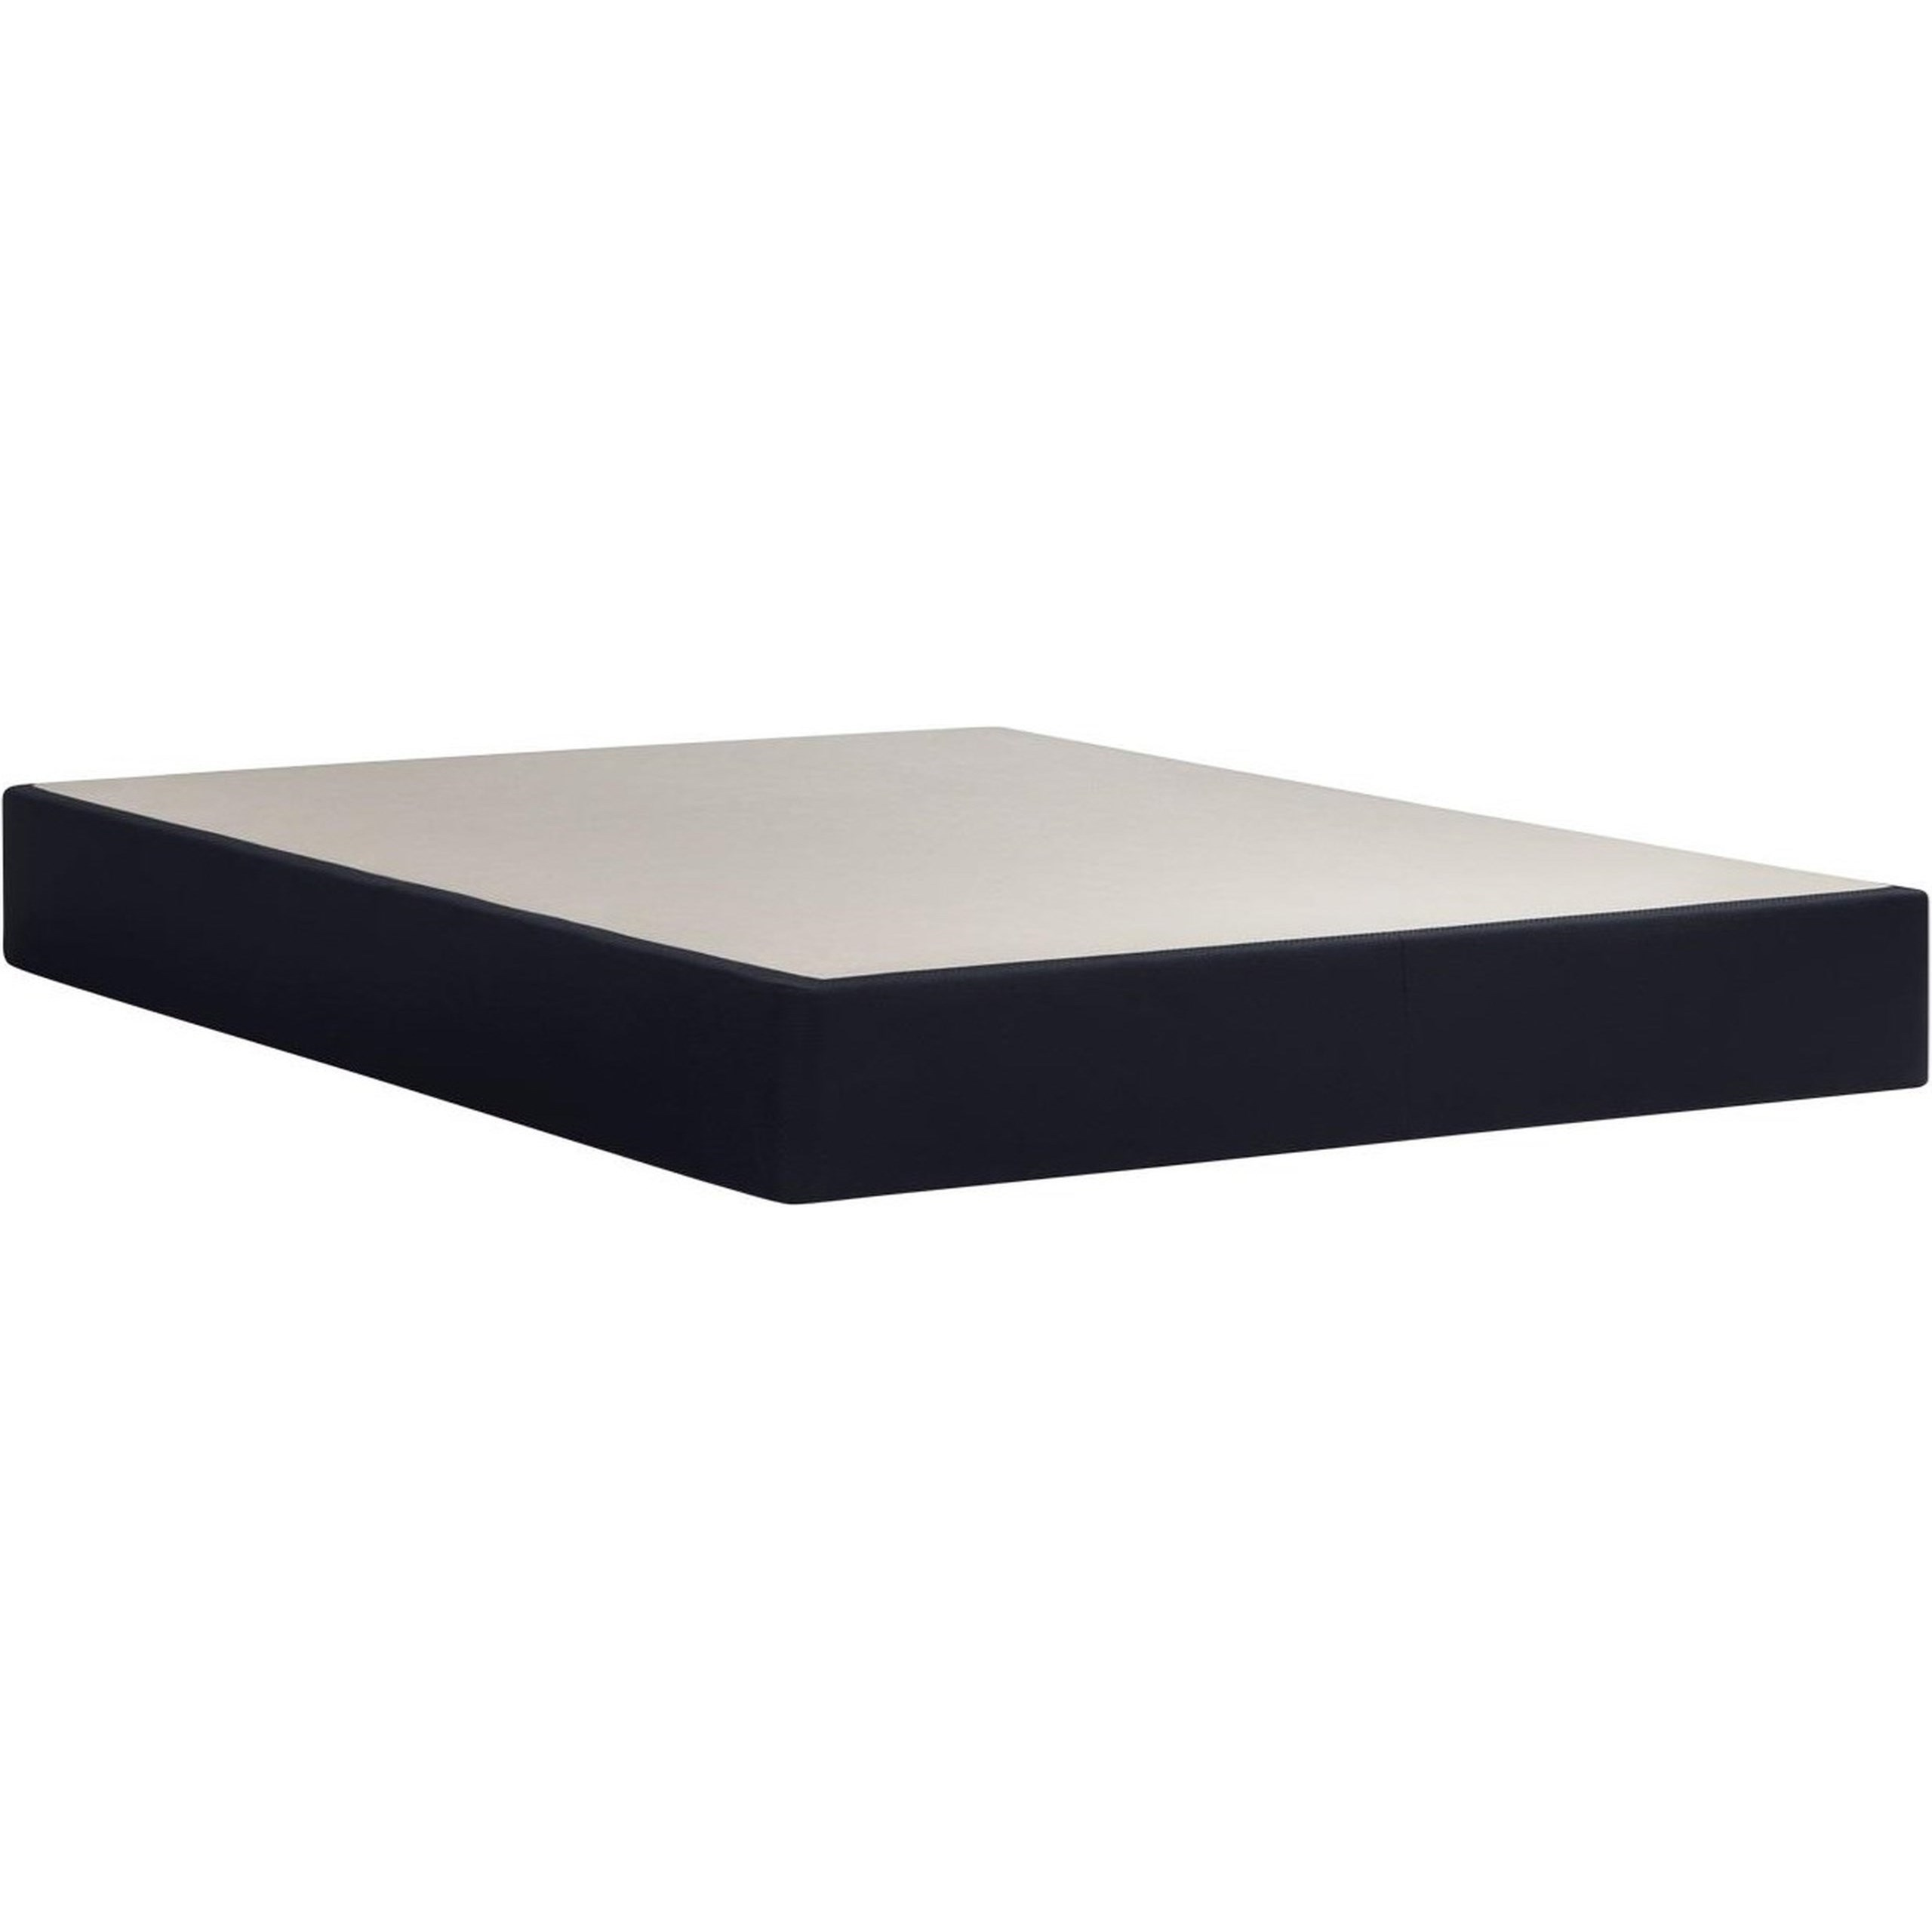 "2019 Stearns and Foster Foundations Split Queen Standard Base 9"" Height by Stearns & Foster at Pedigo Furniture"